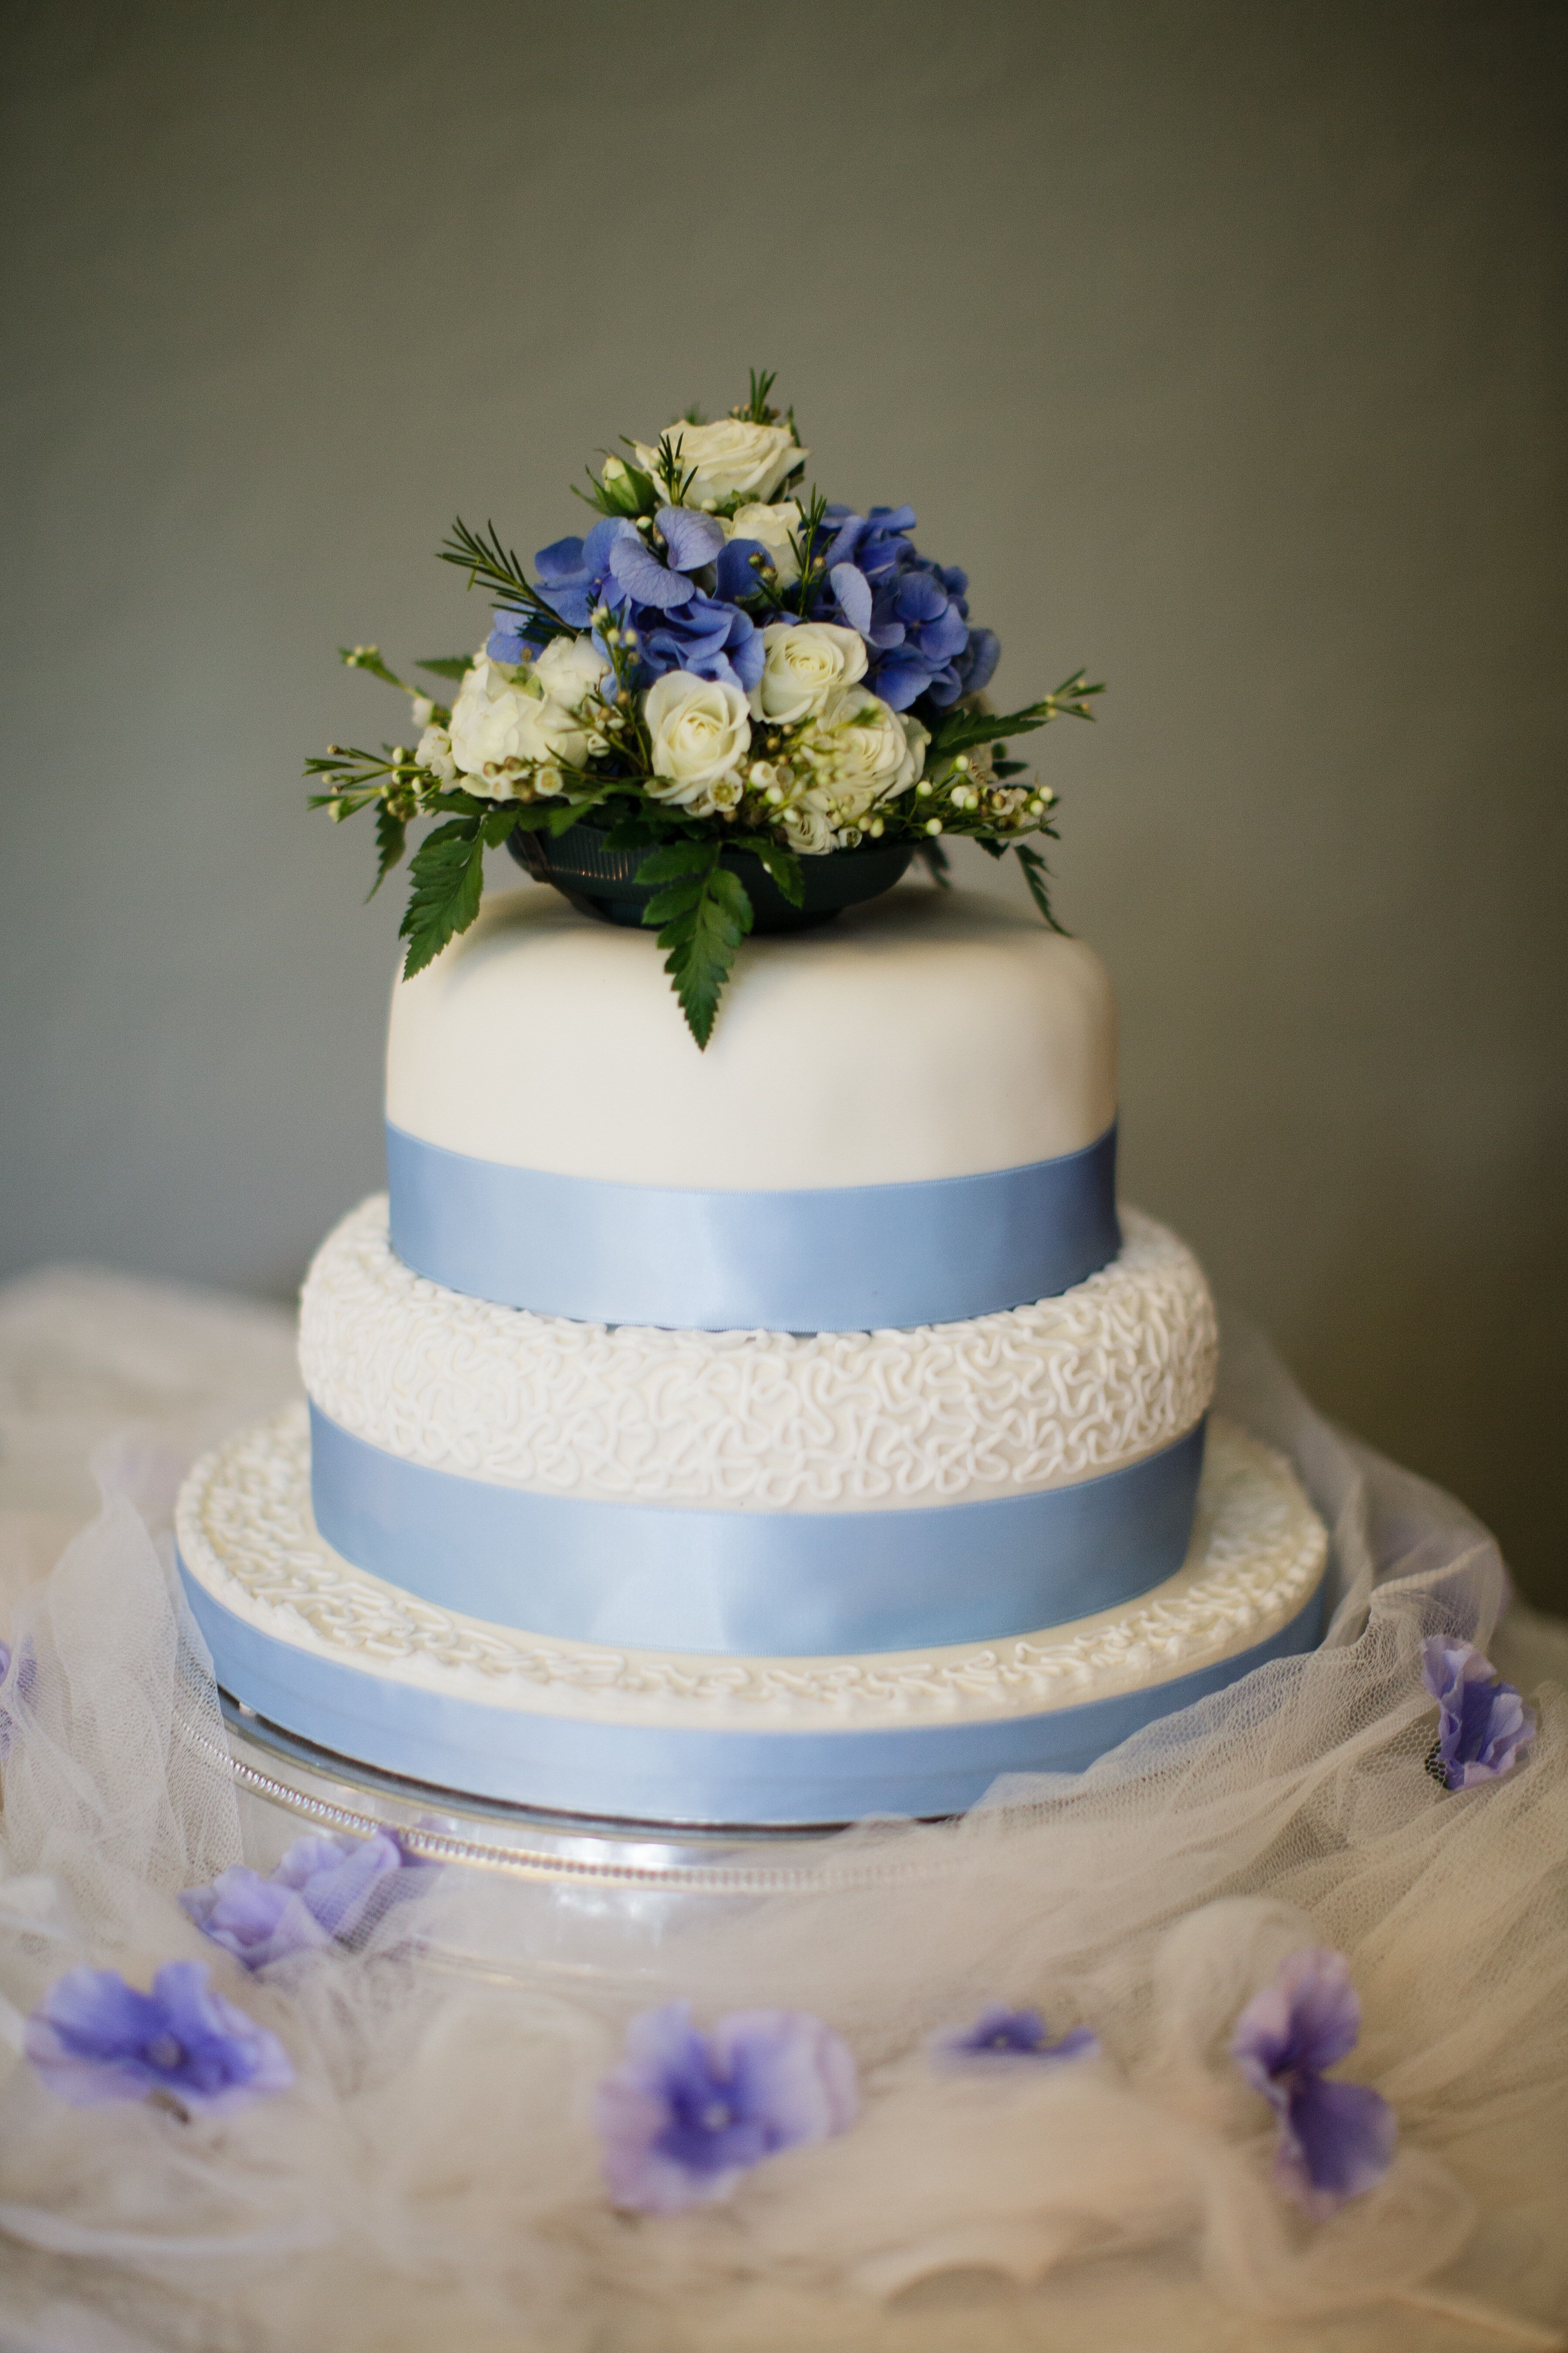 Three Tier Wedding Cake With Blue Ribbon